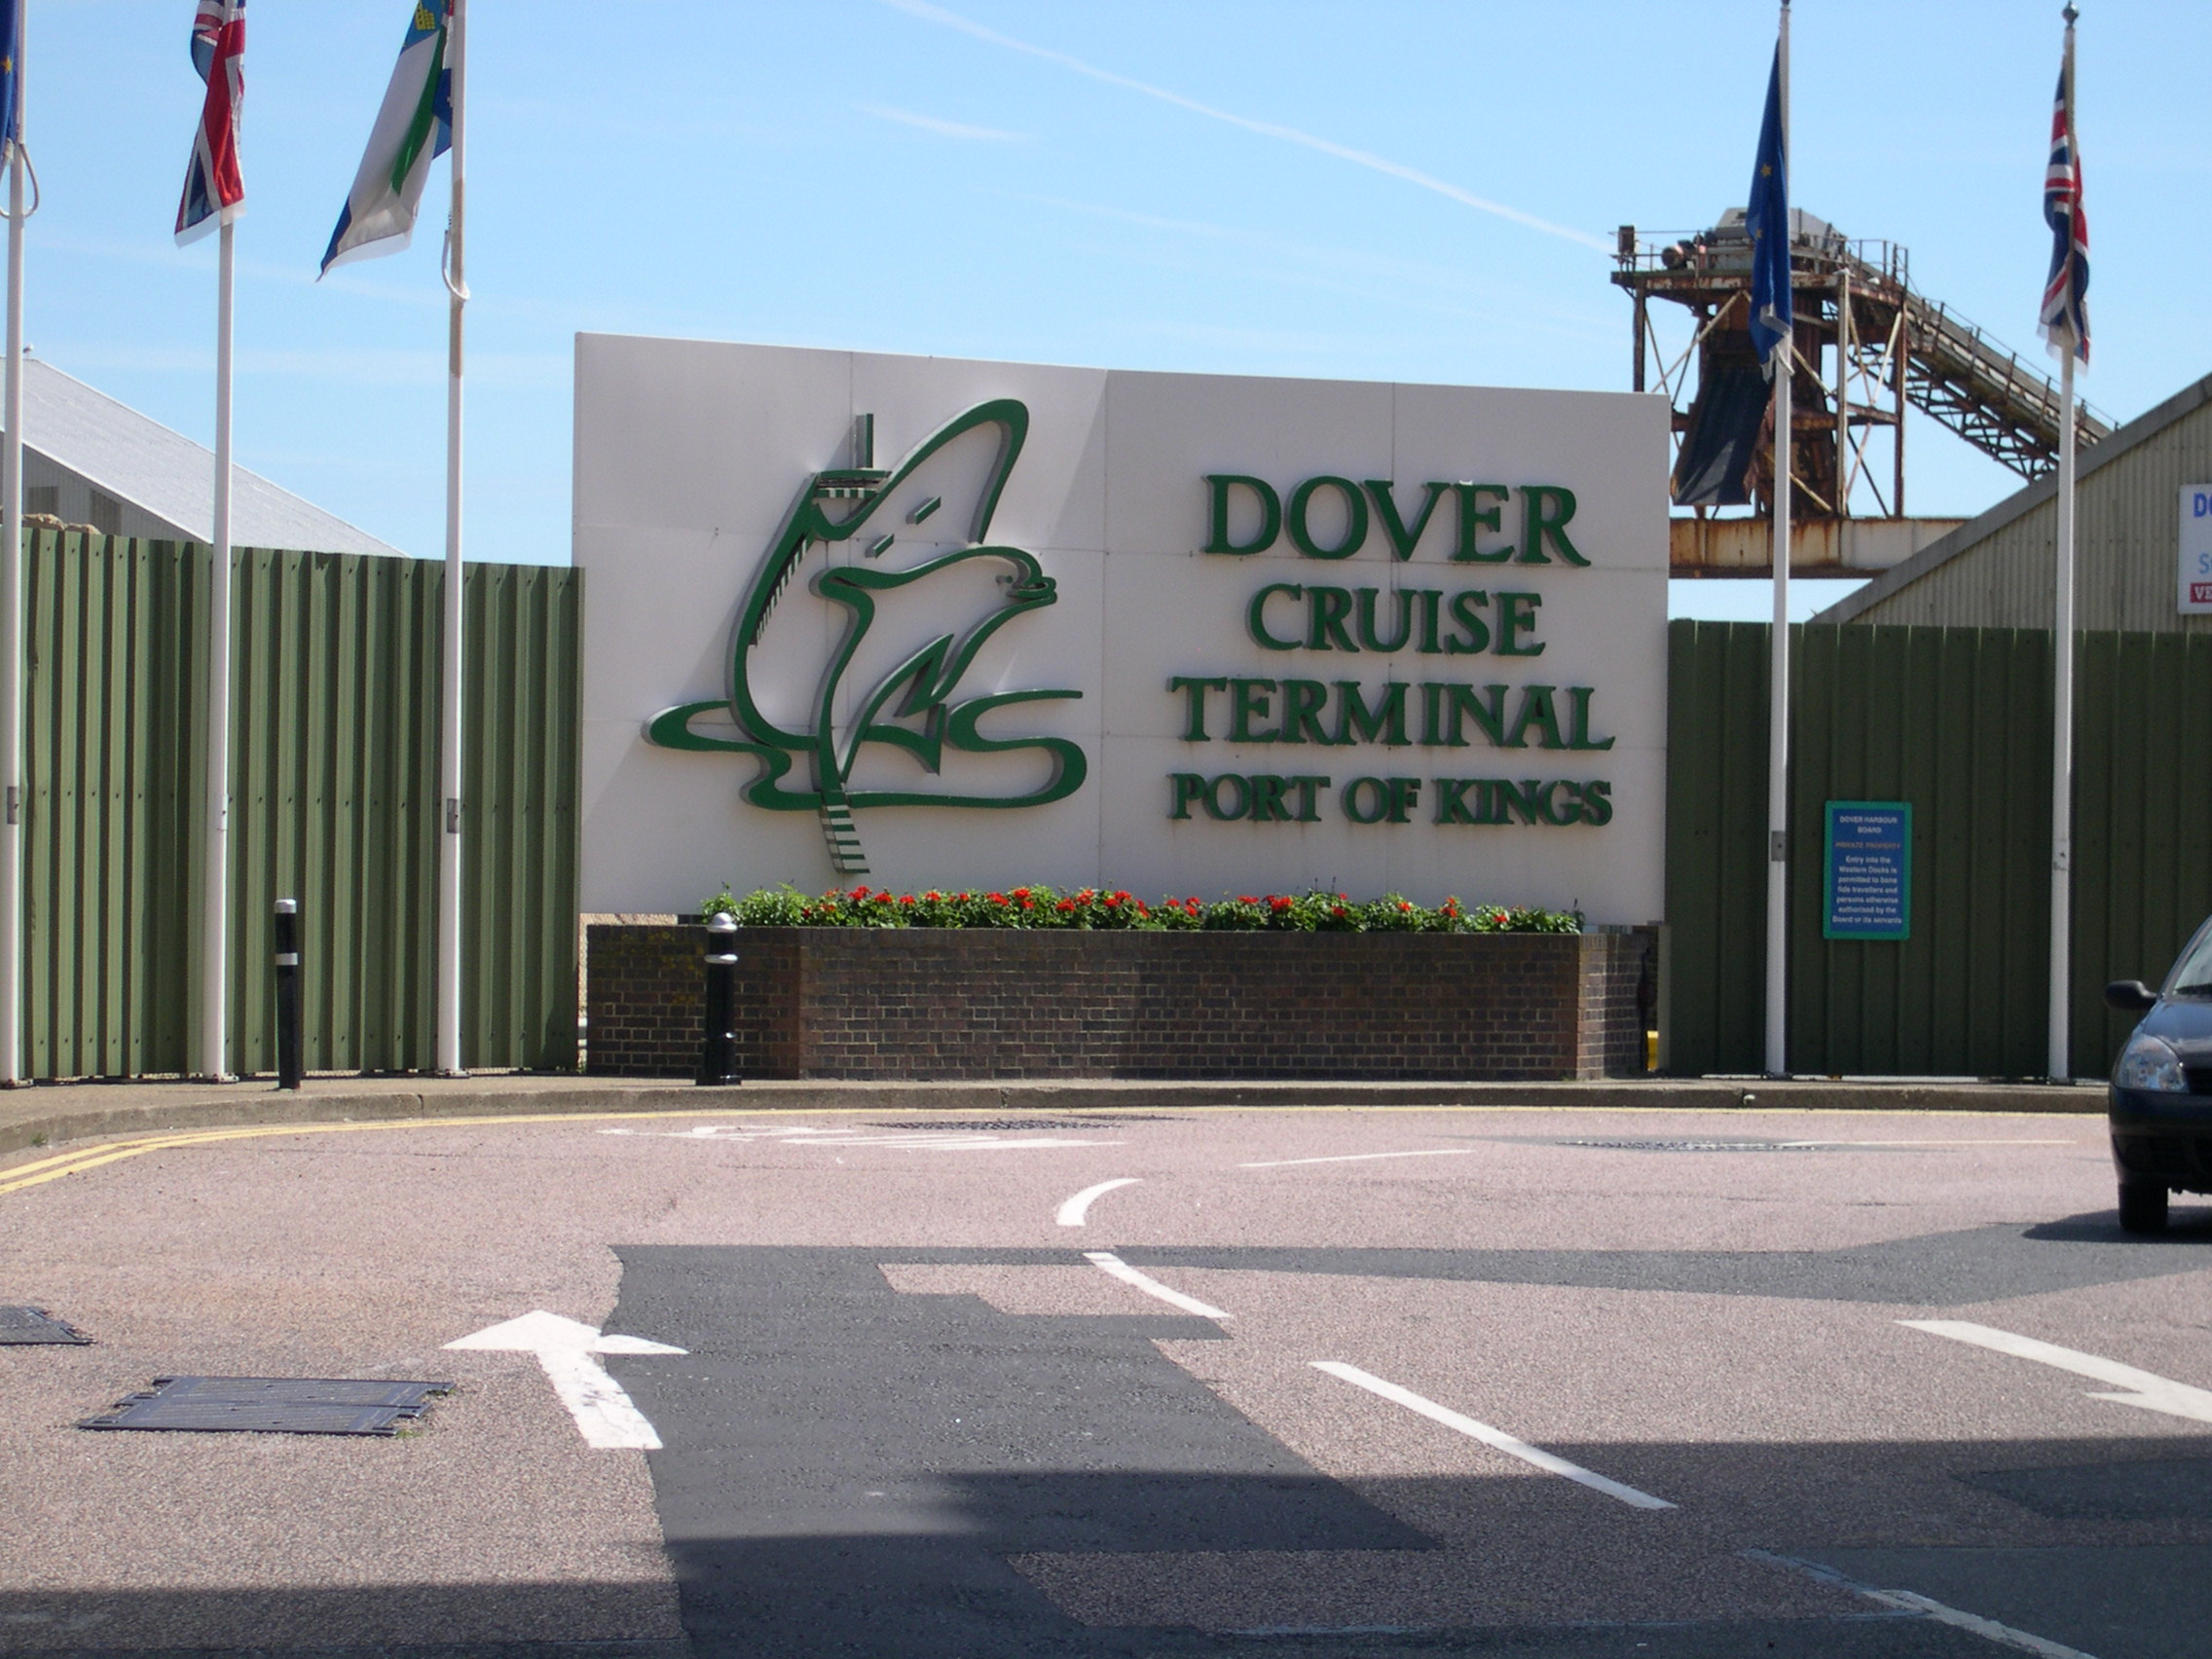 Dover Cruise Port to Heathrow Taxi Service, Dover to Heathrow Travel